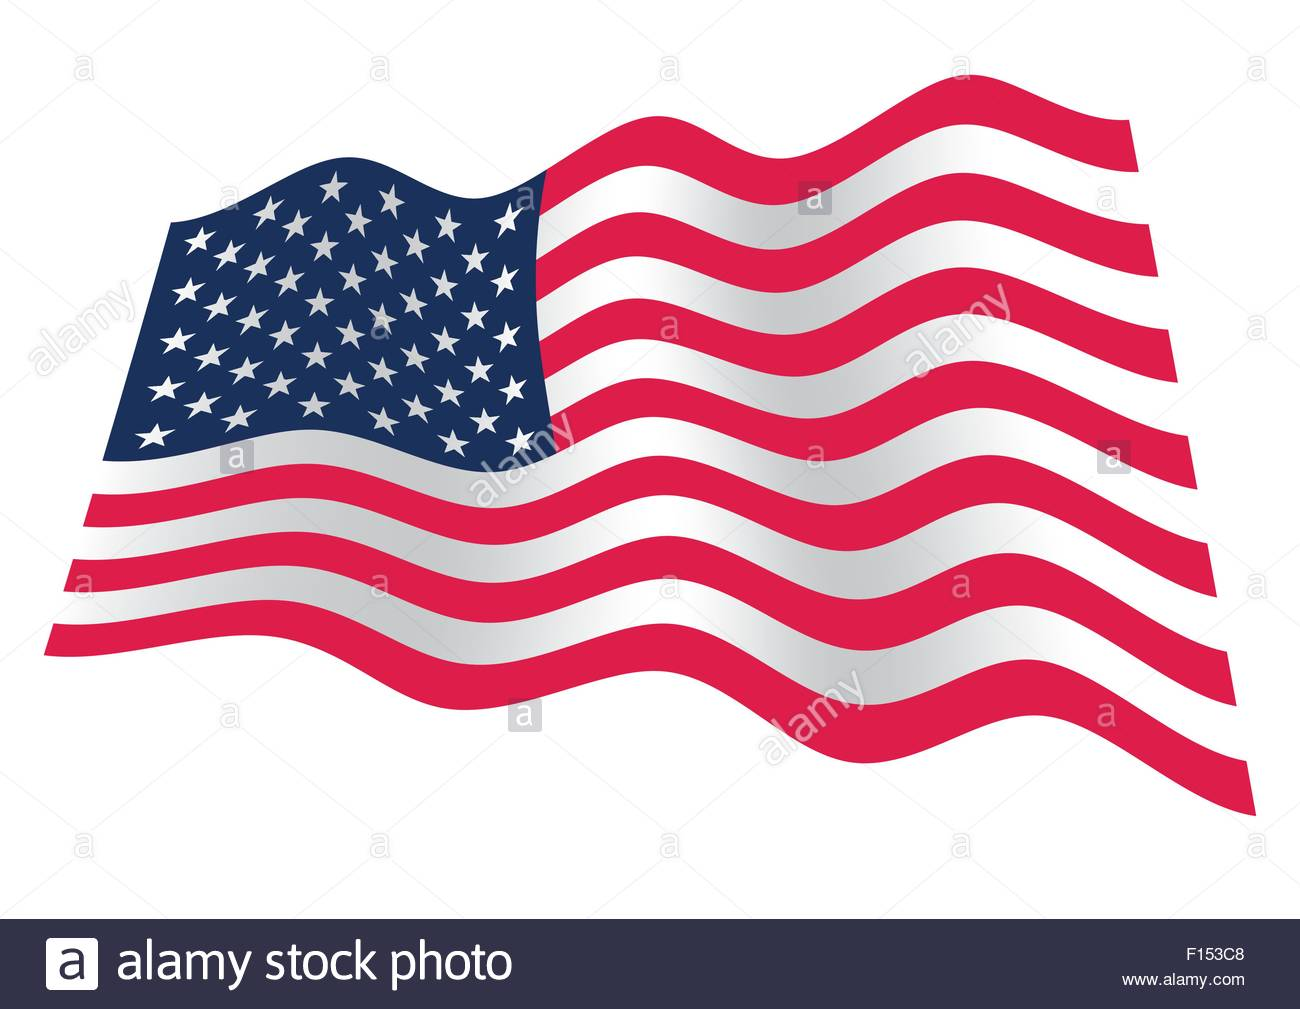 a0dc0e276de9 American flag with stars and stripes waving on the wind - Stock Vector